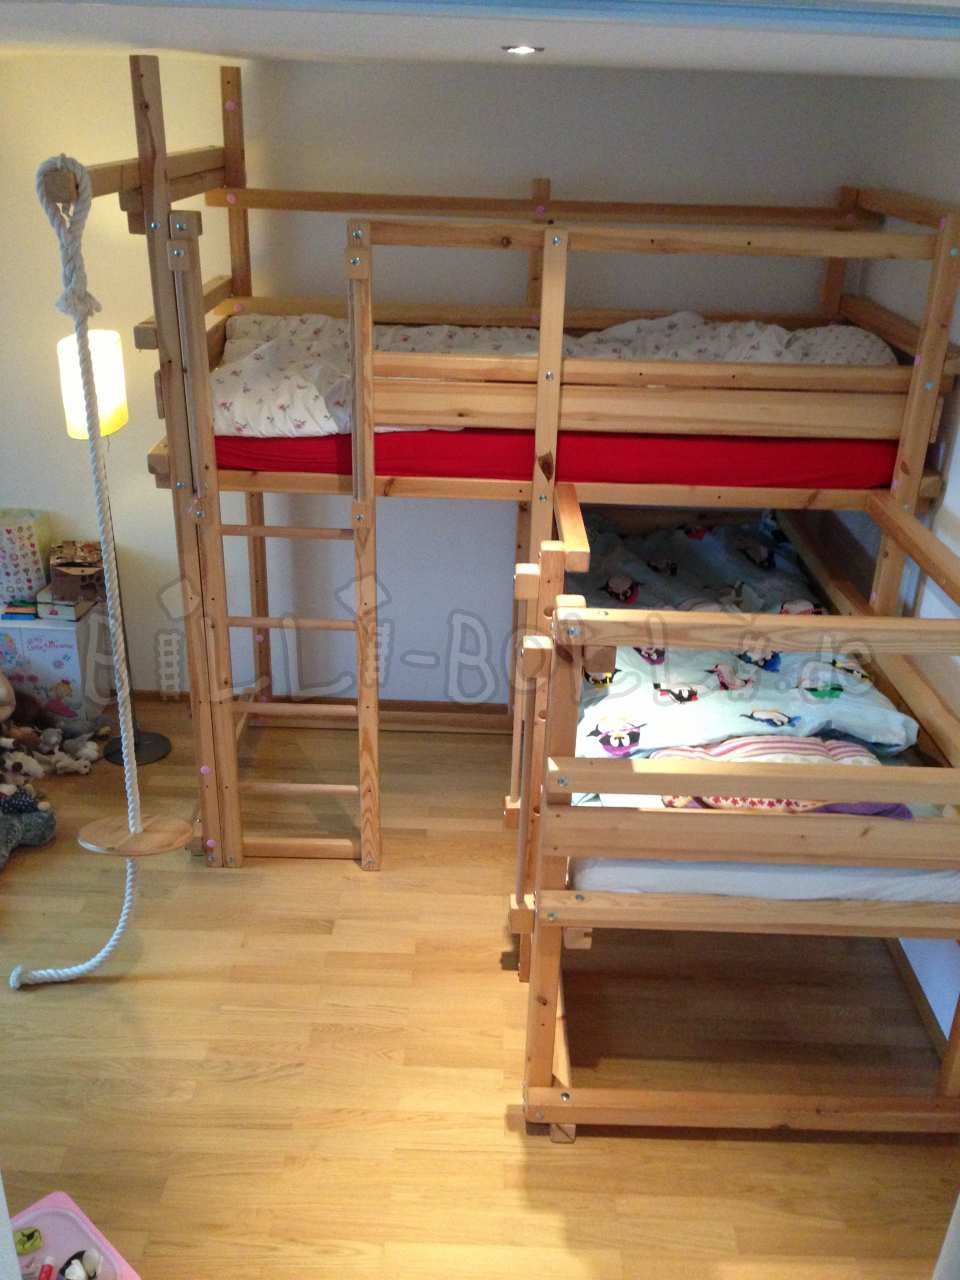 Bei-oben-bed 1A, 90 x 200 cm, pine itself varnished (second hand kids' furniture)